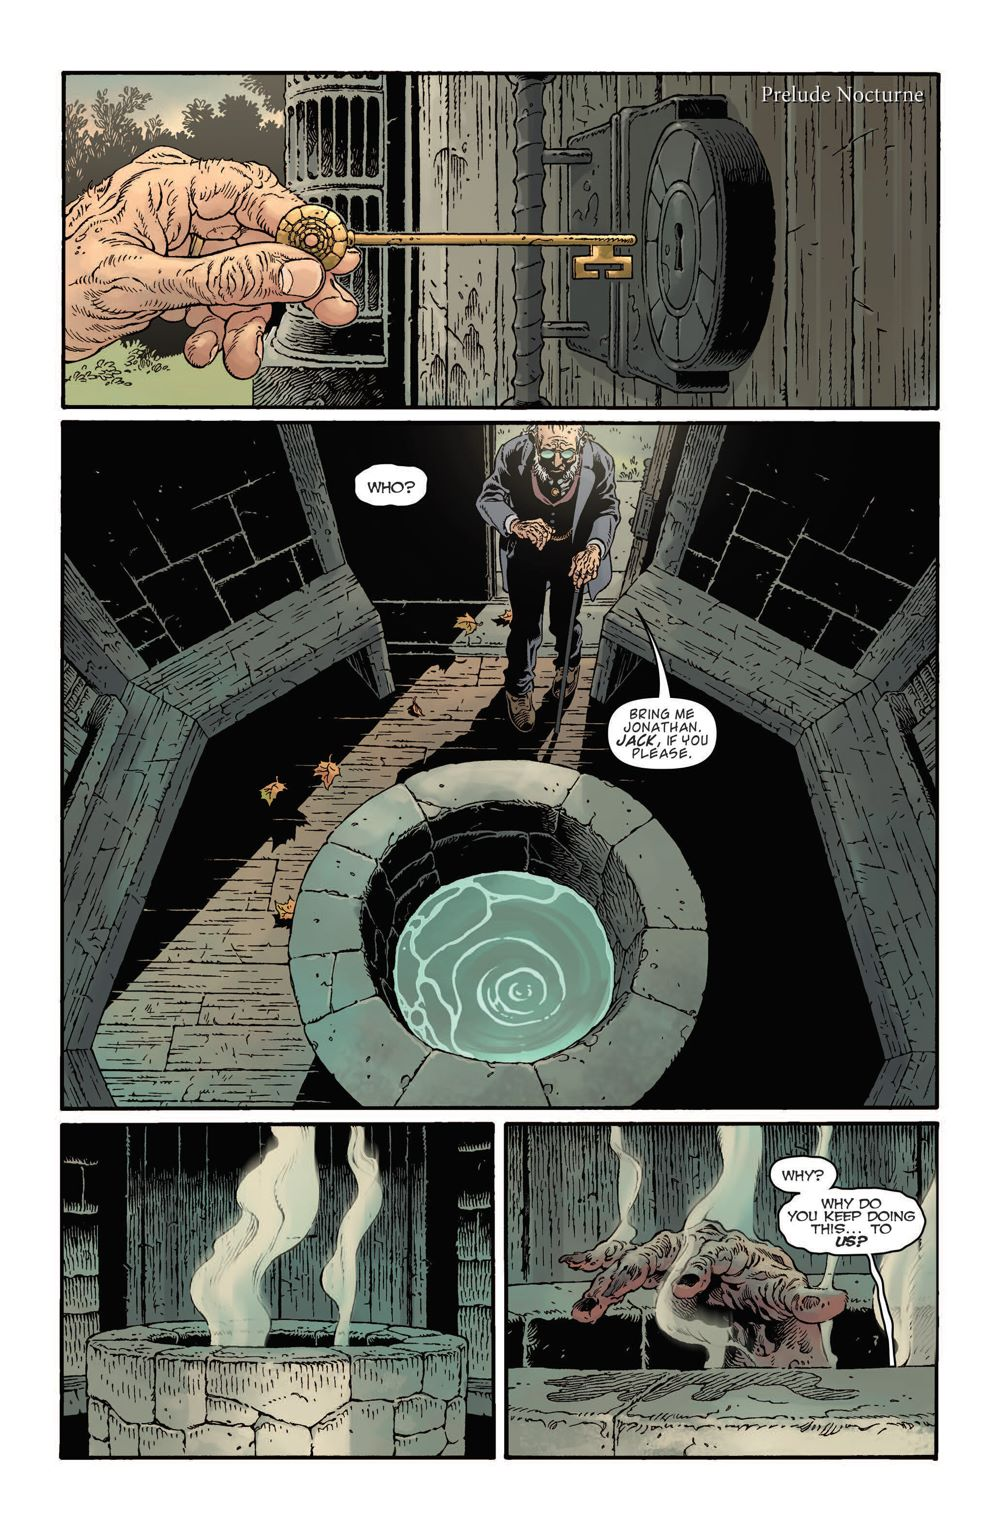 93427034-801e-4e72-ac60-b8c1688d9b8a First Look at IDW Publishing's LOCKE AND KEY THE SANDMAN UNIVERSE HELL AND GONE #1